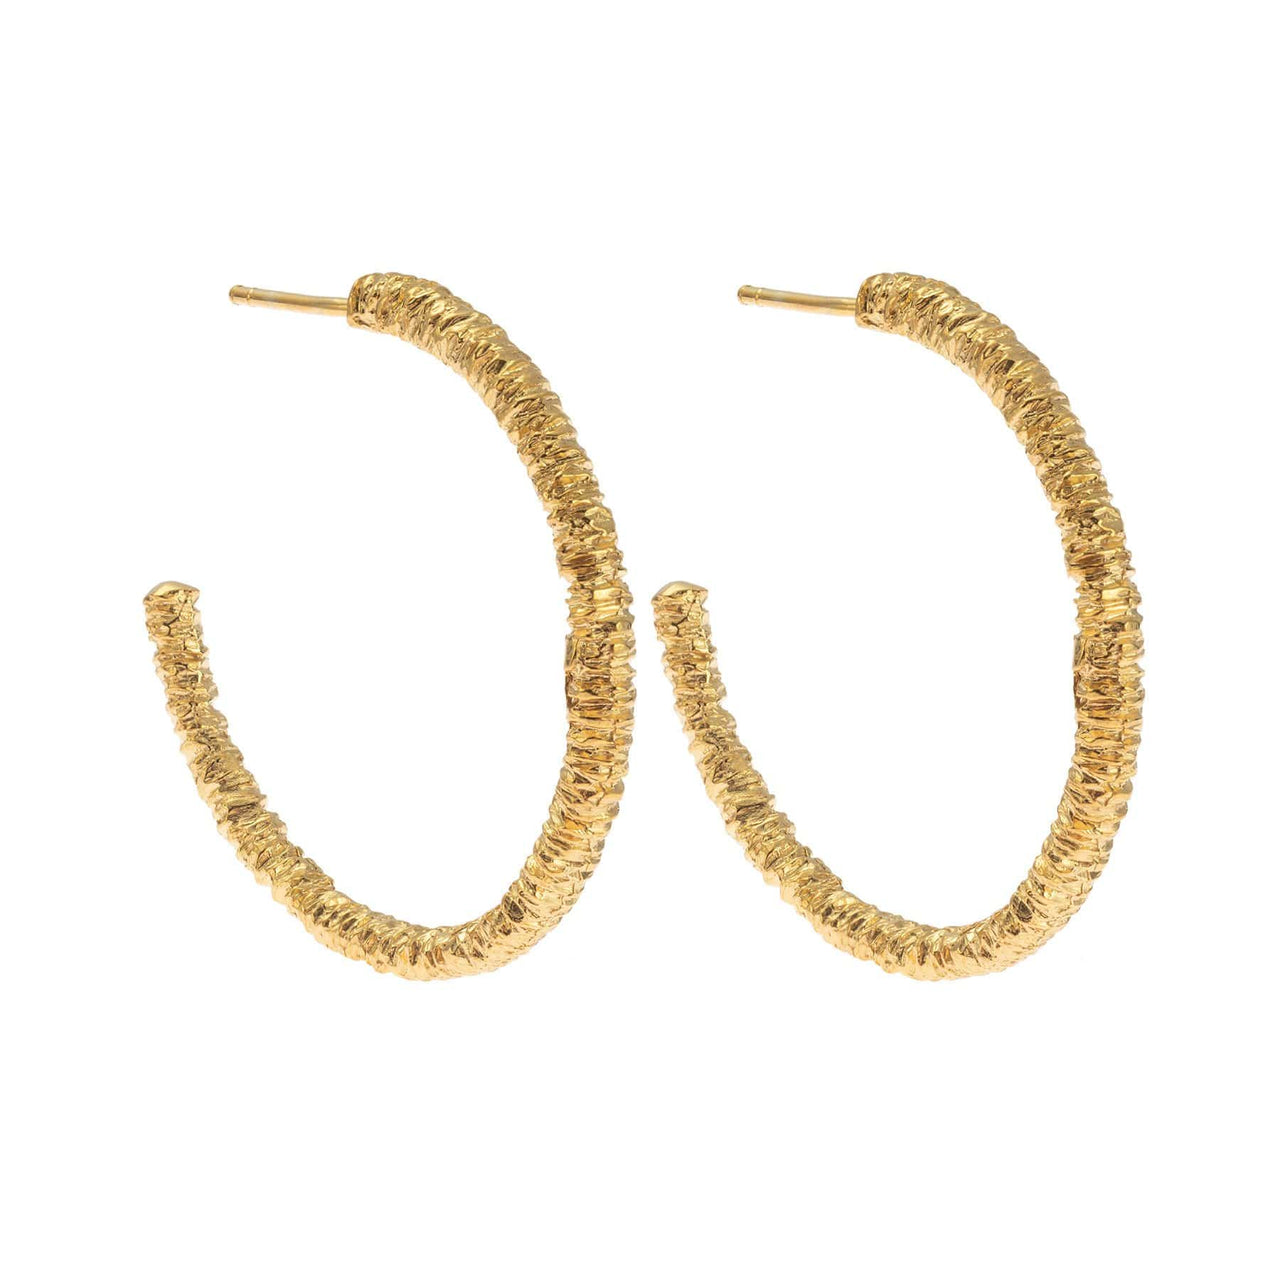 Hissia Earrings Gold Marrakech Hoop Earrings